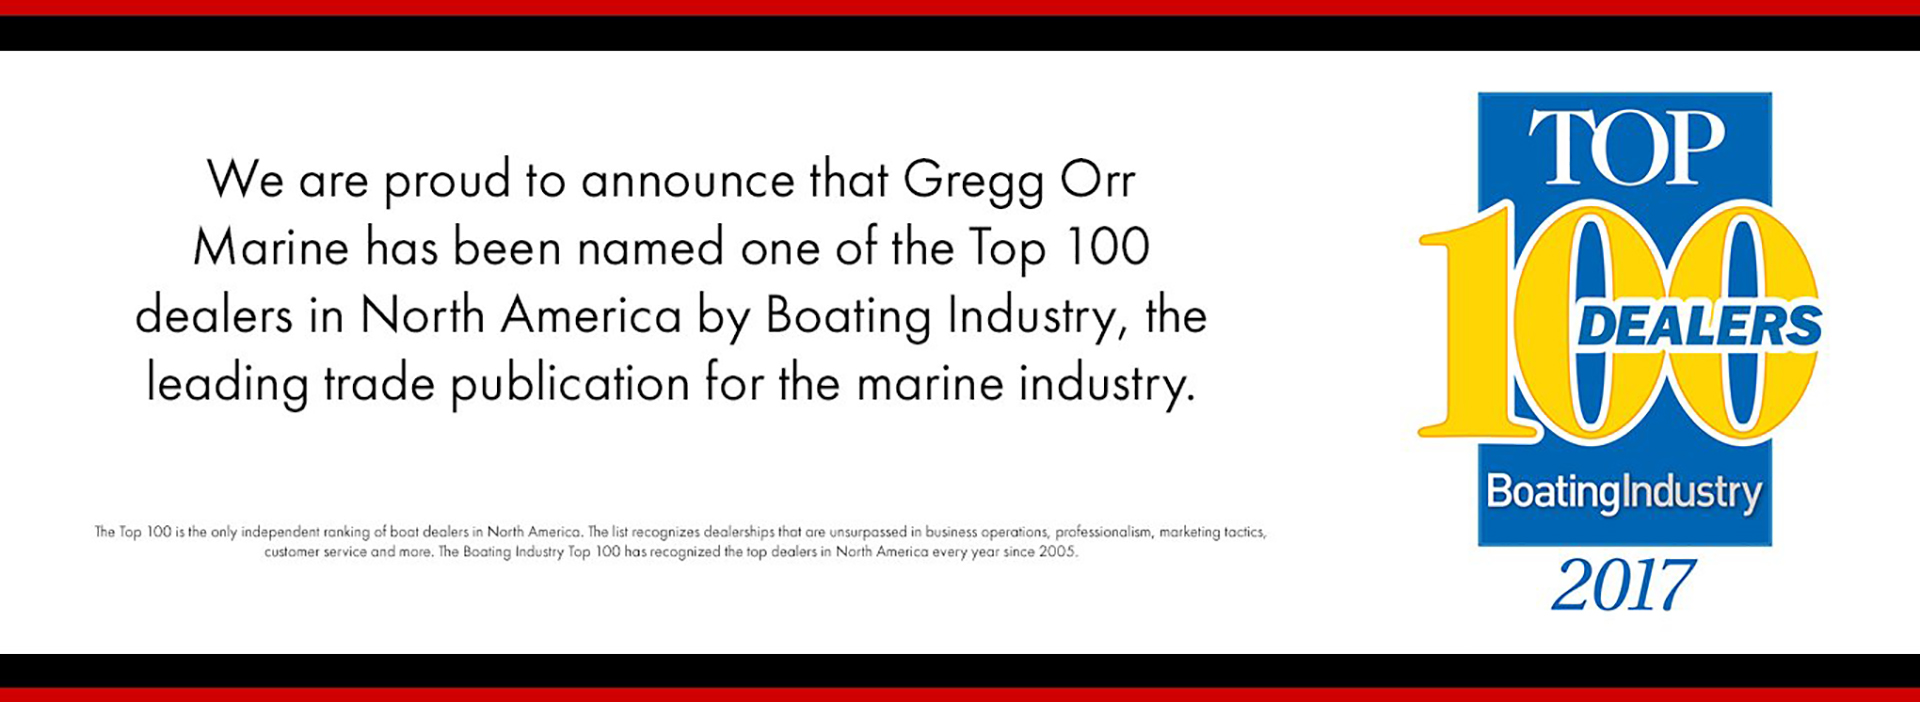 Top 100 Dealers Marine Industry Gregg Orr Marine